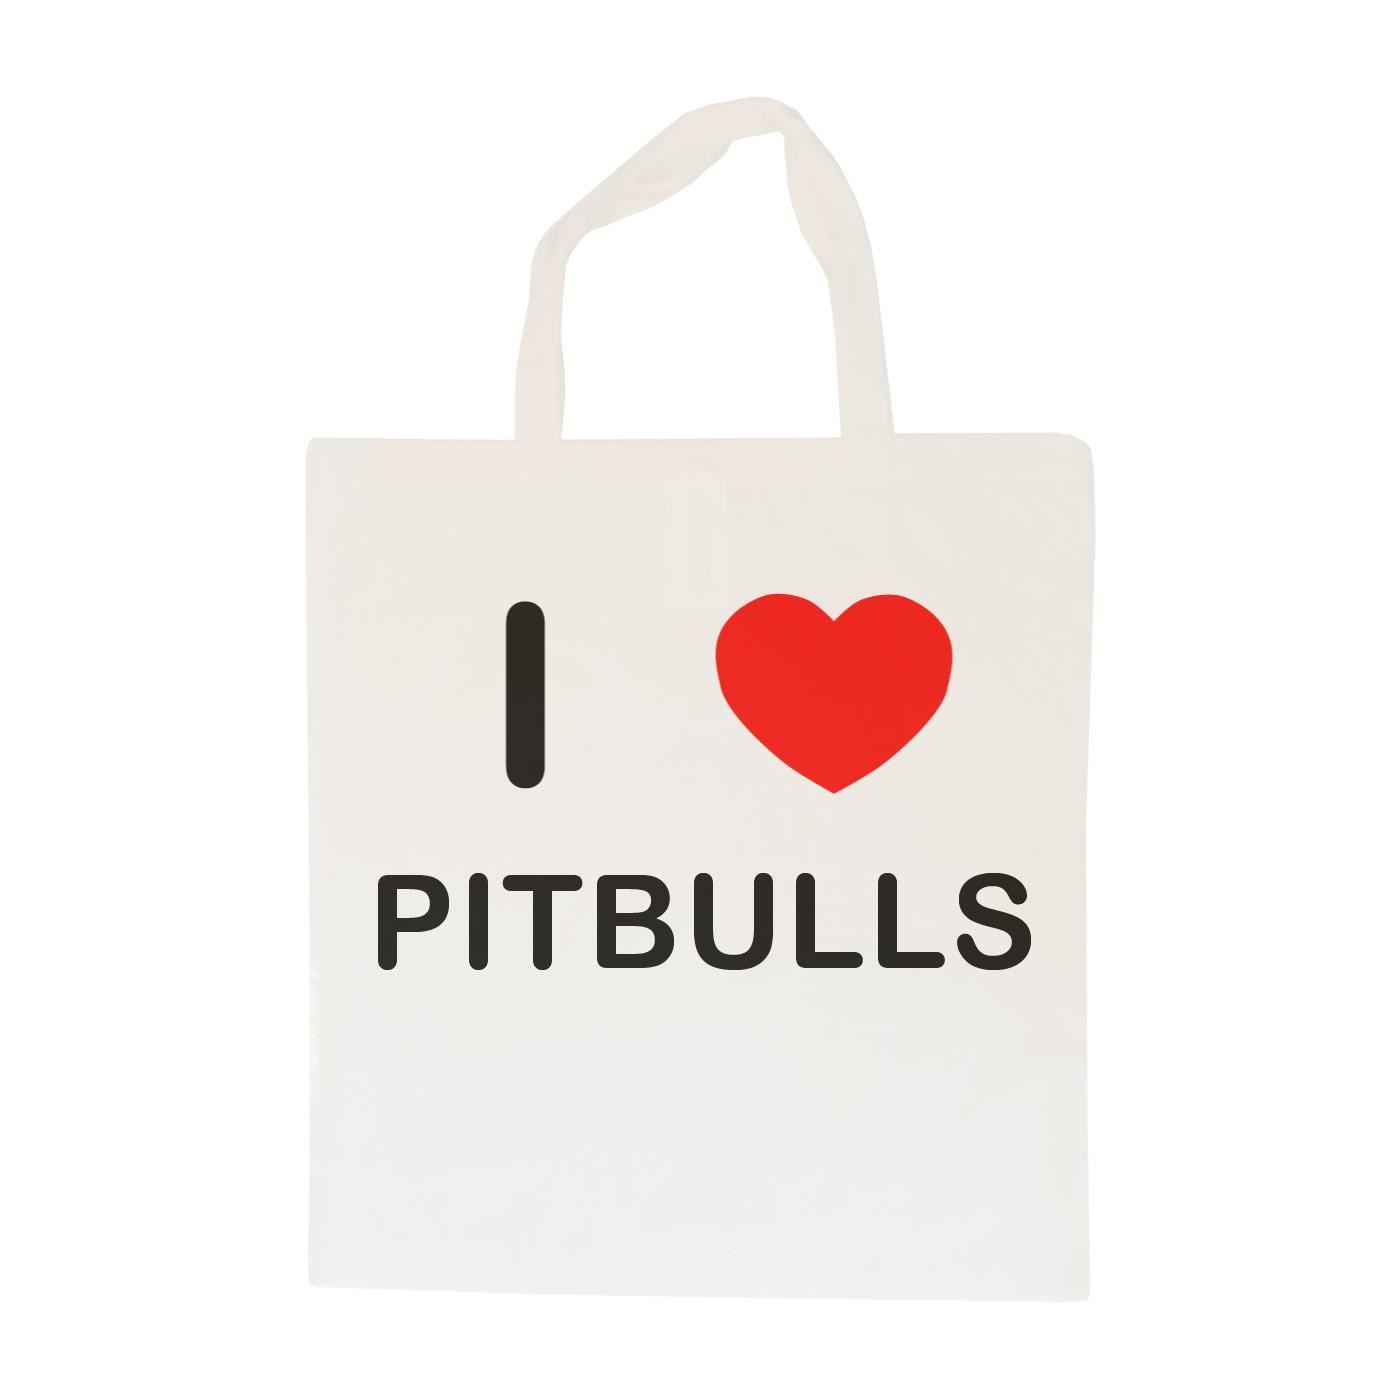 I Love Pitbulls - Cotton Bag | Size choice Tote, Shopper or Sling